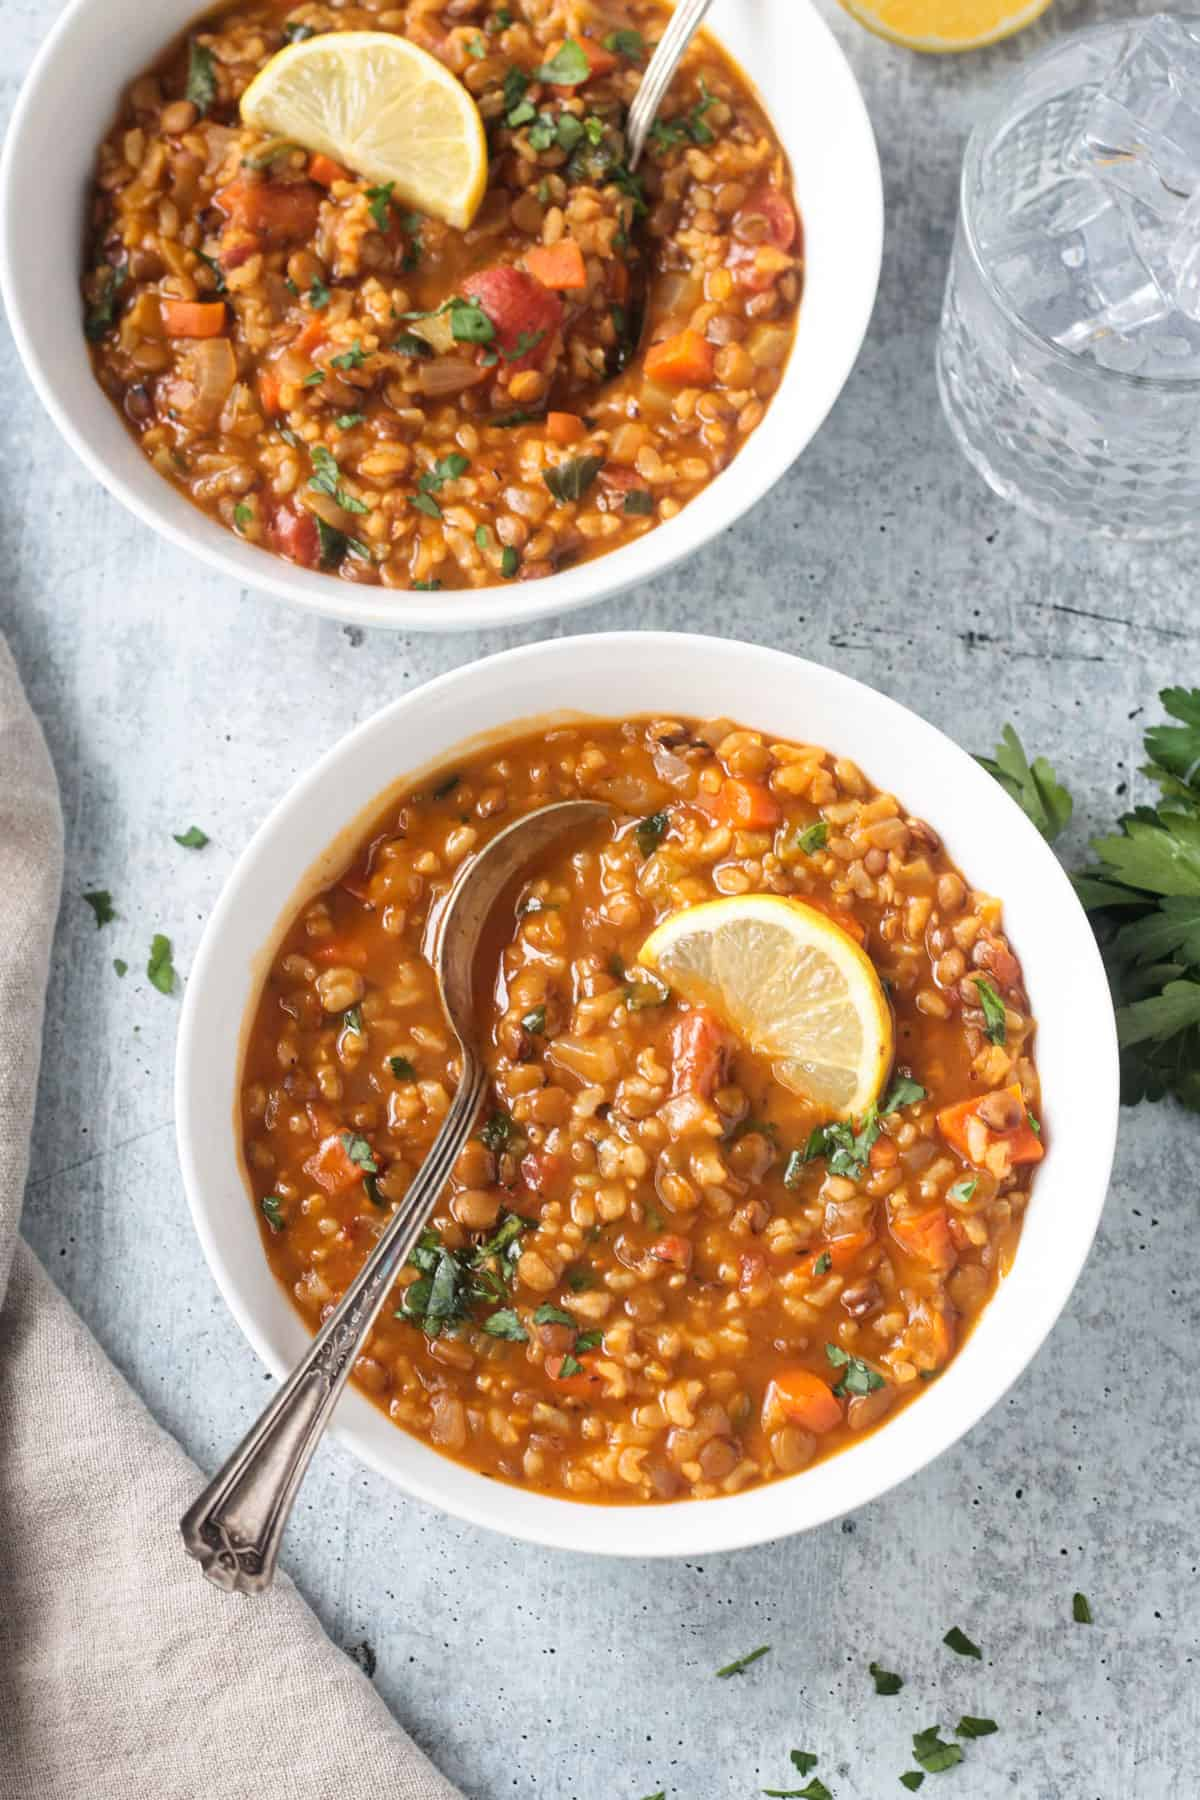 Two bowls of lentil rice soup on a table.